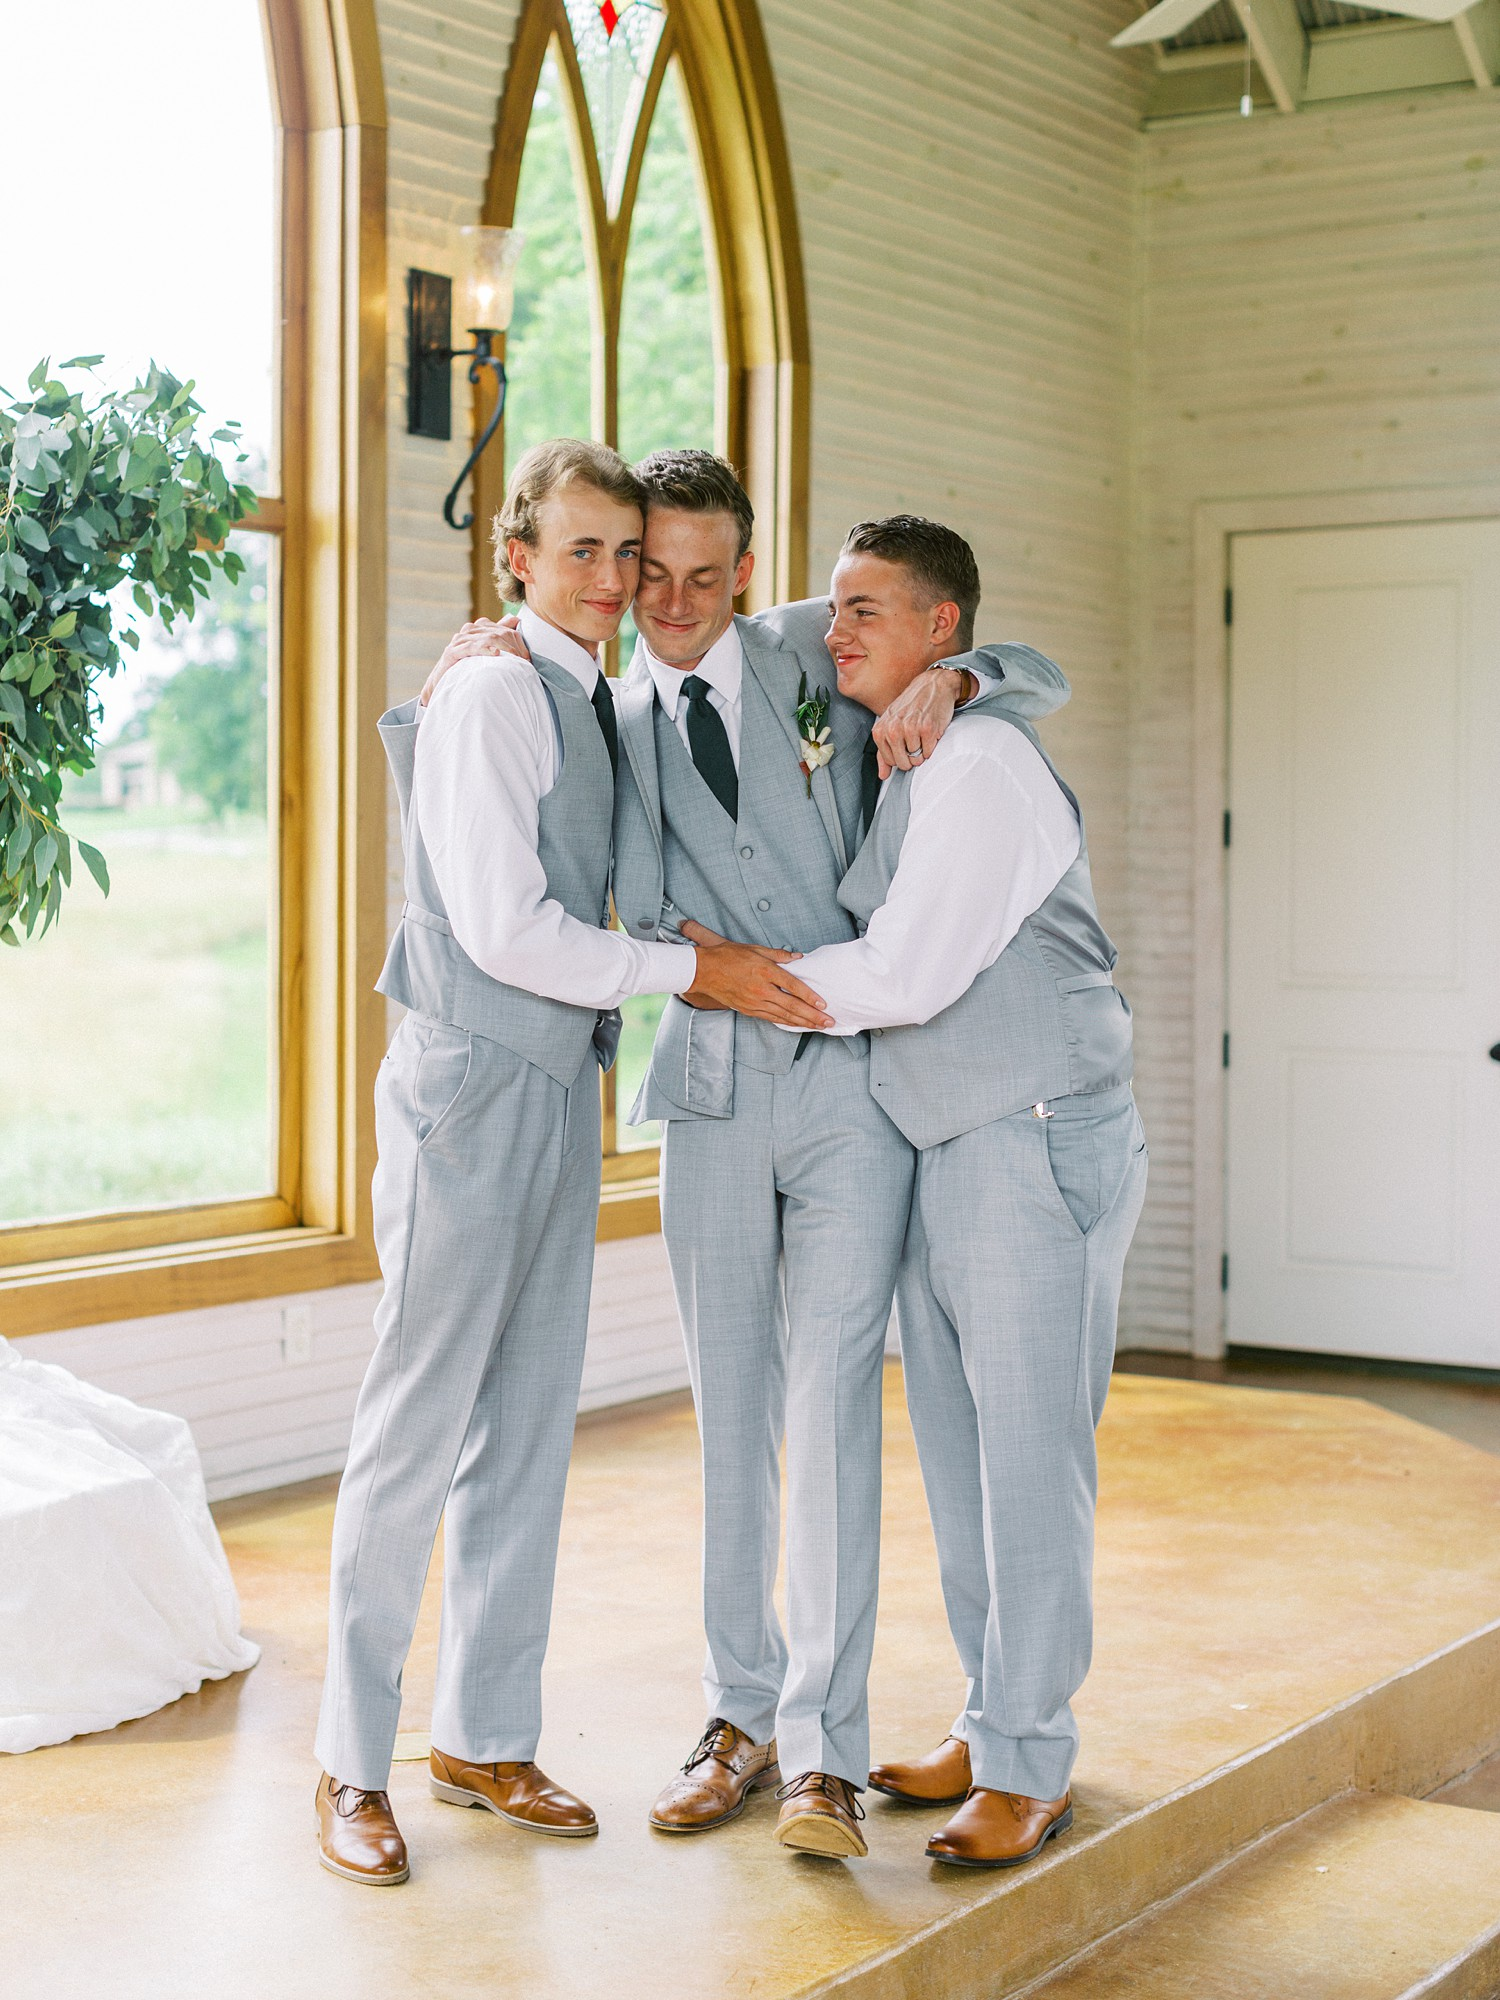 Summer Wedding Inspiration, Grey Groomsman Suits | Wedding Gift | Something Old | | Summer Wedding Inspiration | Fort Worth Wedding Photographer | The Brooks at Weatherford